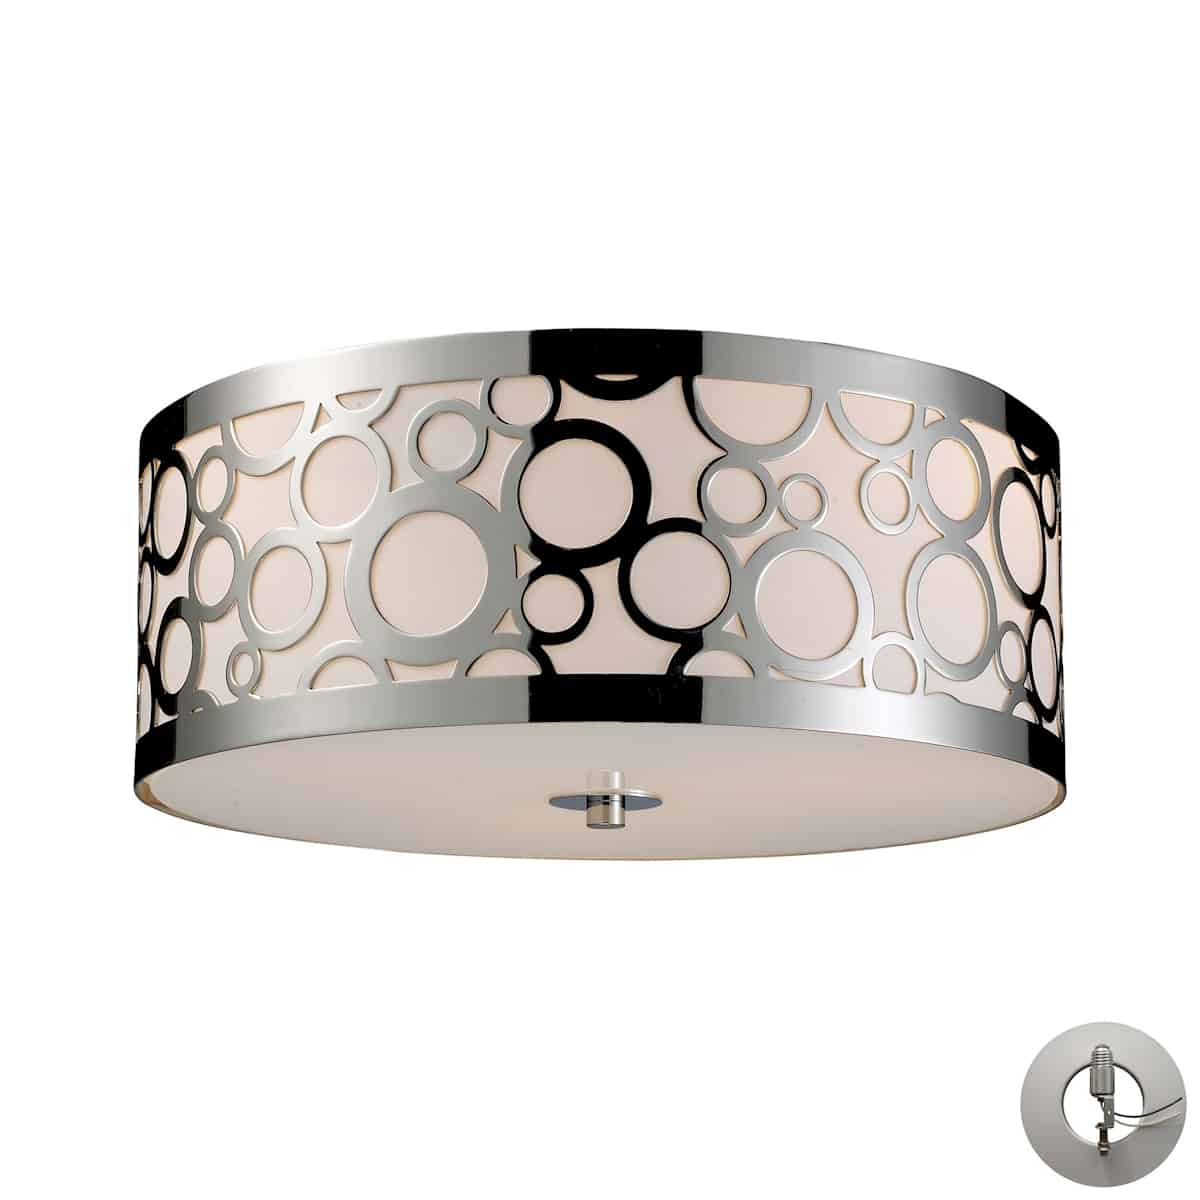 """EL-31024/3-LA_The Retrovia Flush pairs a graceful """"rising bubbles"""" motif crafted from lustrous laser-cut steel with an elegant Crème diffuser. A sensually contoured shape story completes the design. Beautiful Polished Nickel finish. Immaculate transitional look. LED optional."""